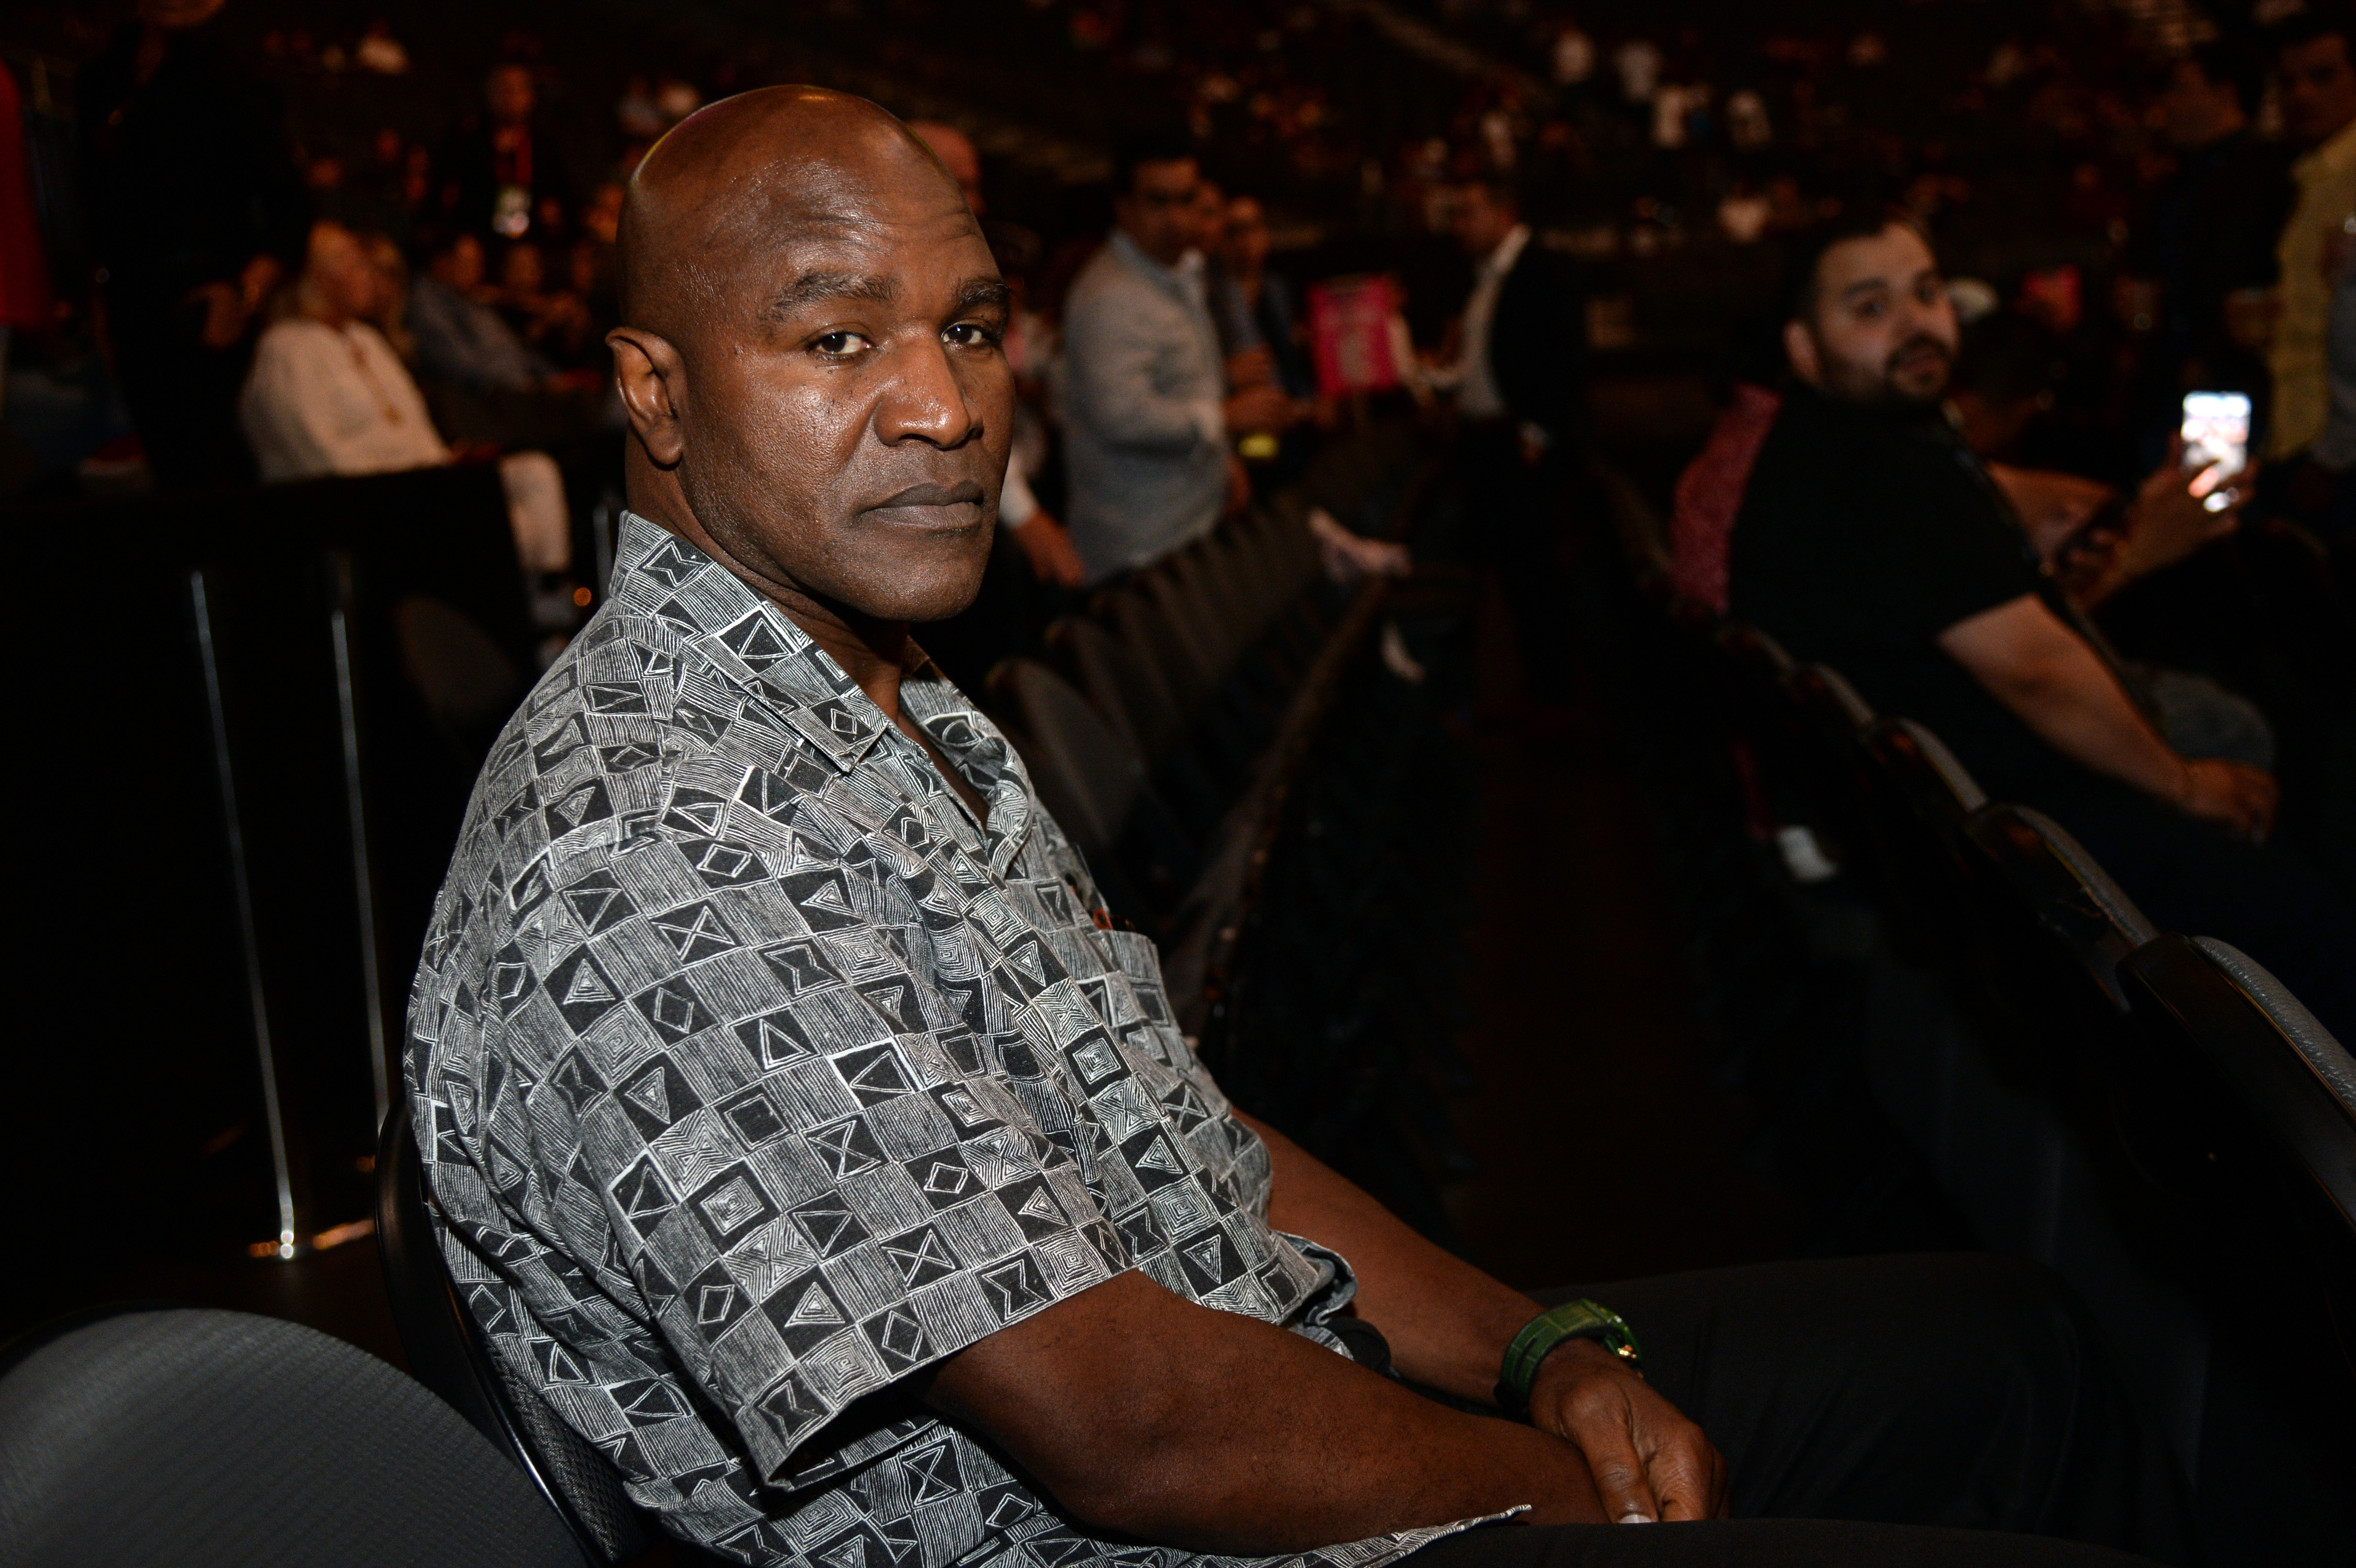 Former boxing champion Evander Holyfield attends the Canelo Alvarez (not pictured) and Daniel Jacobs (not pictured) WBC/WBA/IBF middleweight unification world championship boxing bout at T-Mobile Arena. Alvarez won via unanimous decision